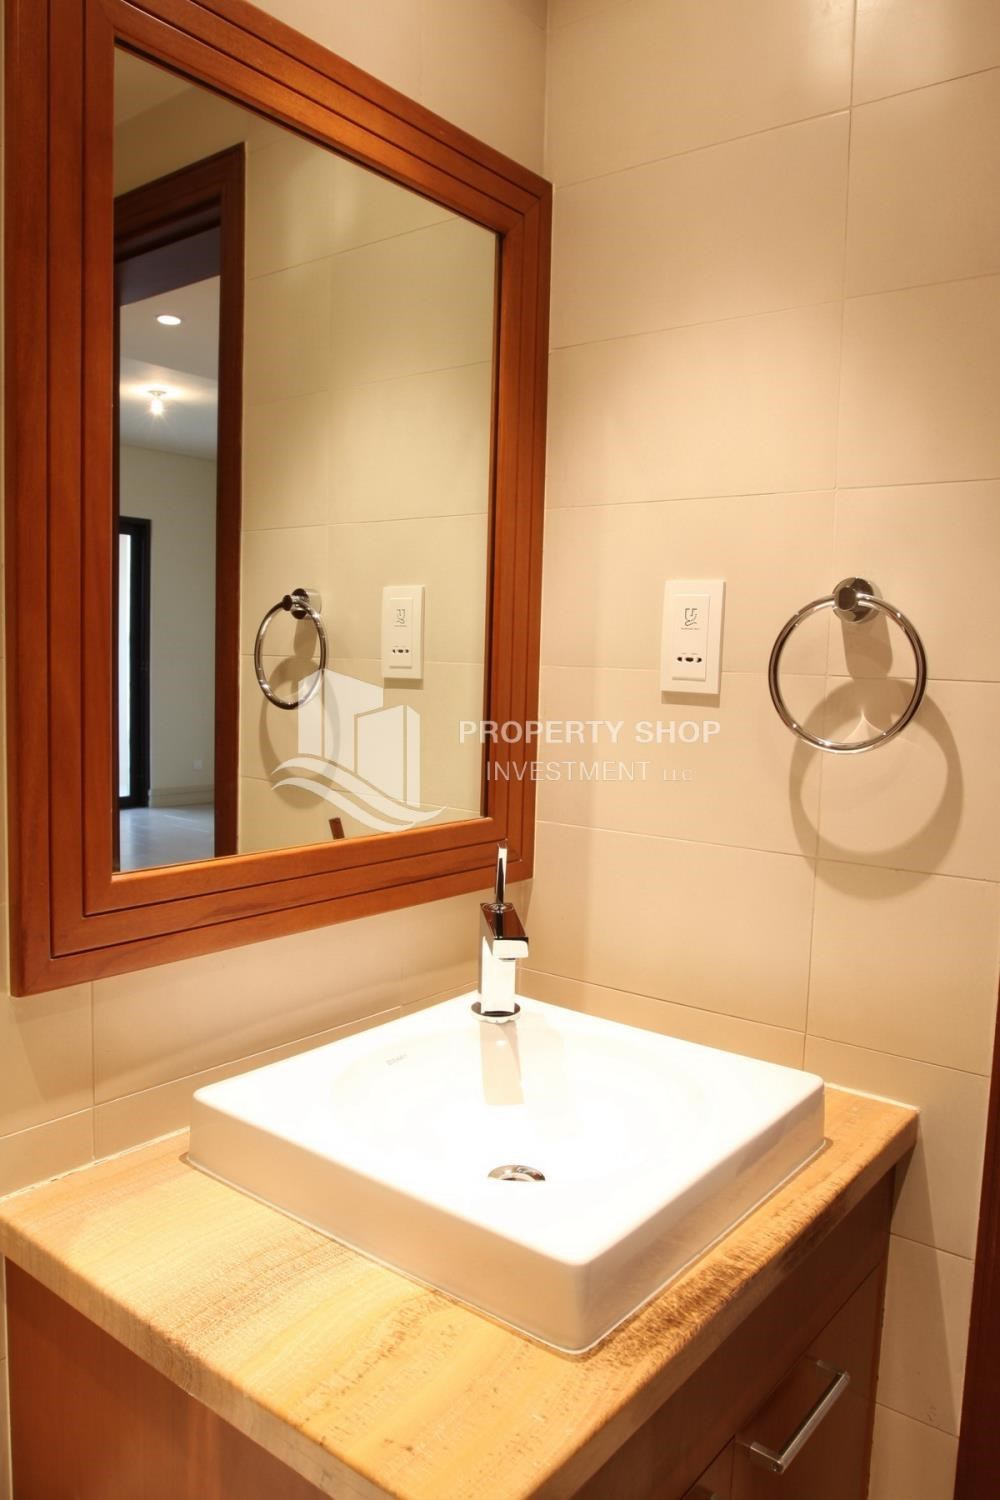 Bathroom - 1 Bedroom Apartment in Amazing and beautiful Saadiyat Beach Apartments FOR RENT!